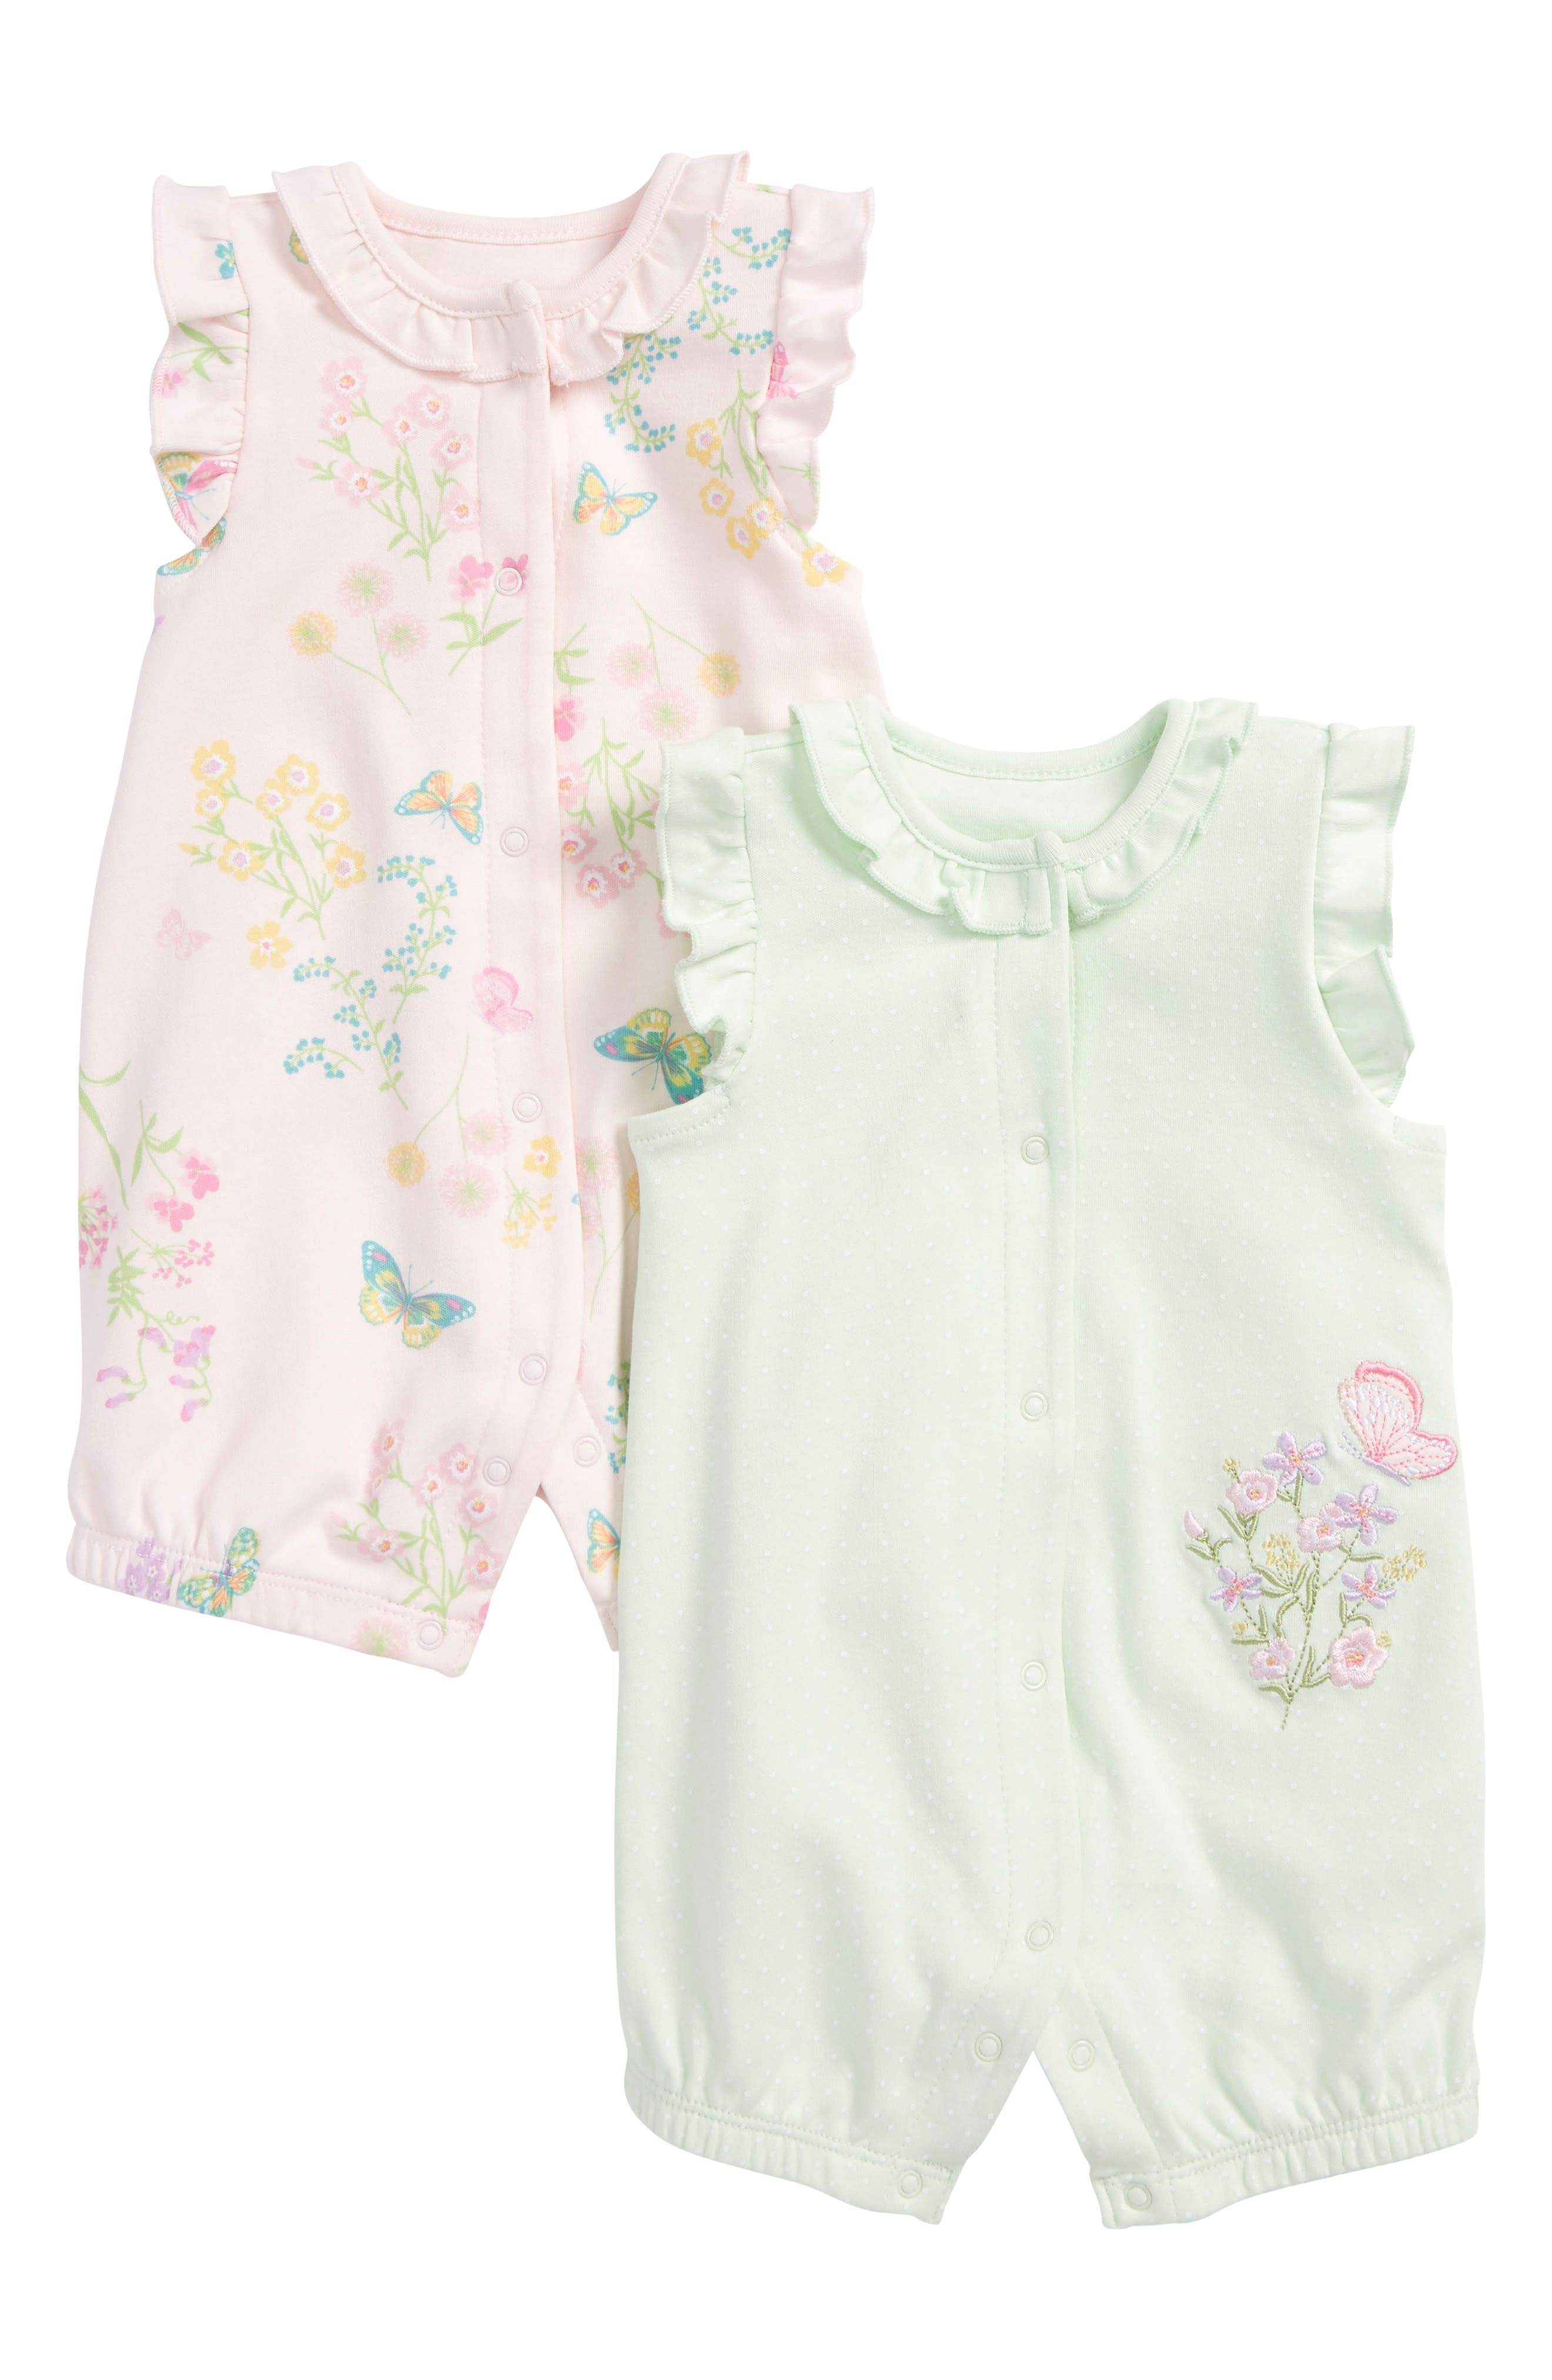 Botanical 2-Pack Rompers,                             Main thumbnail 1, color,                             440